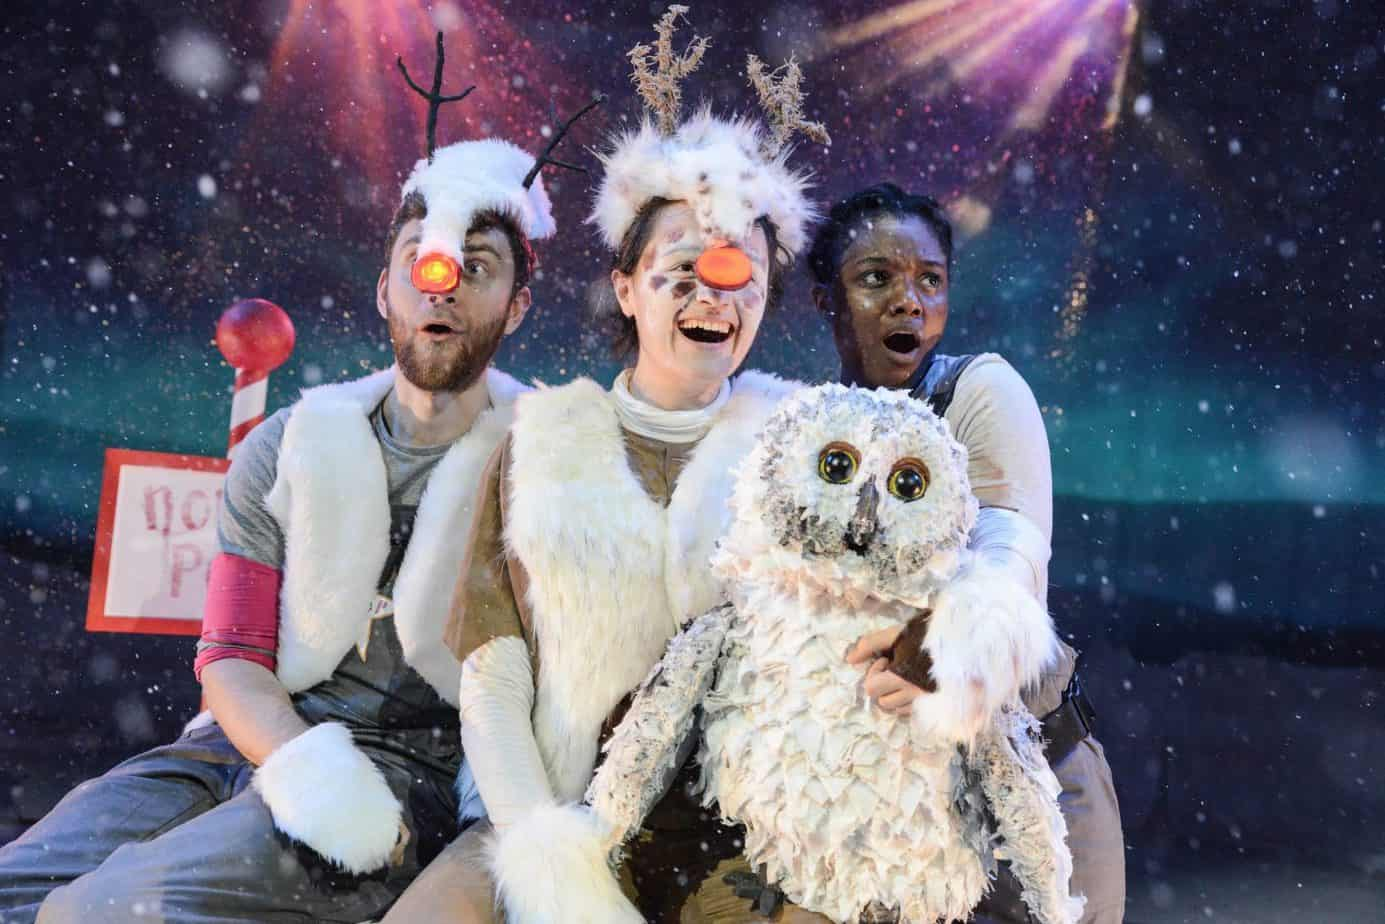 The cast of Rudolf at MAC showing until December 31st 2018